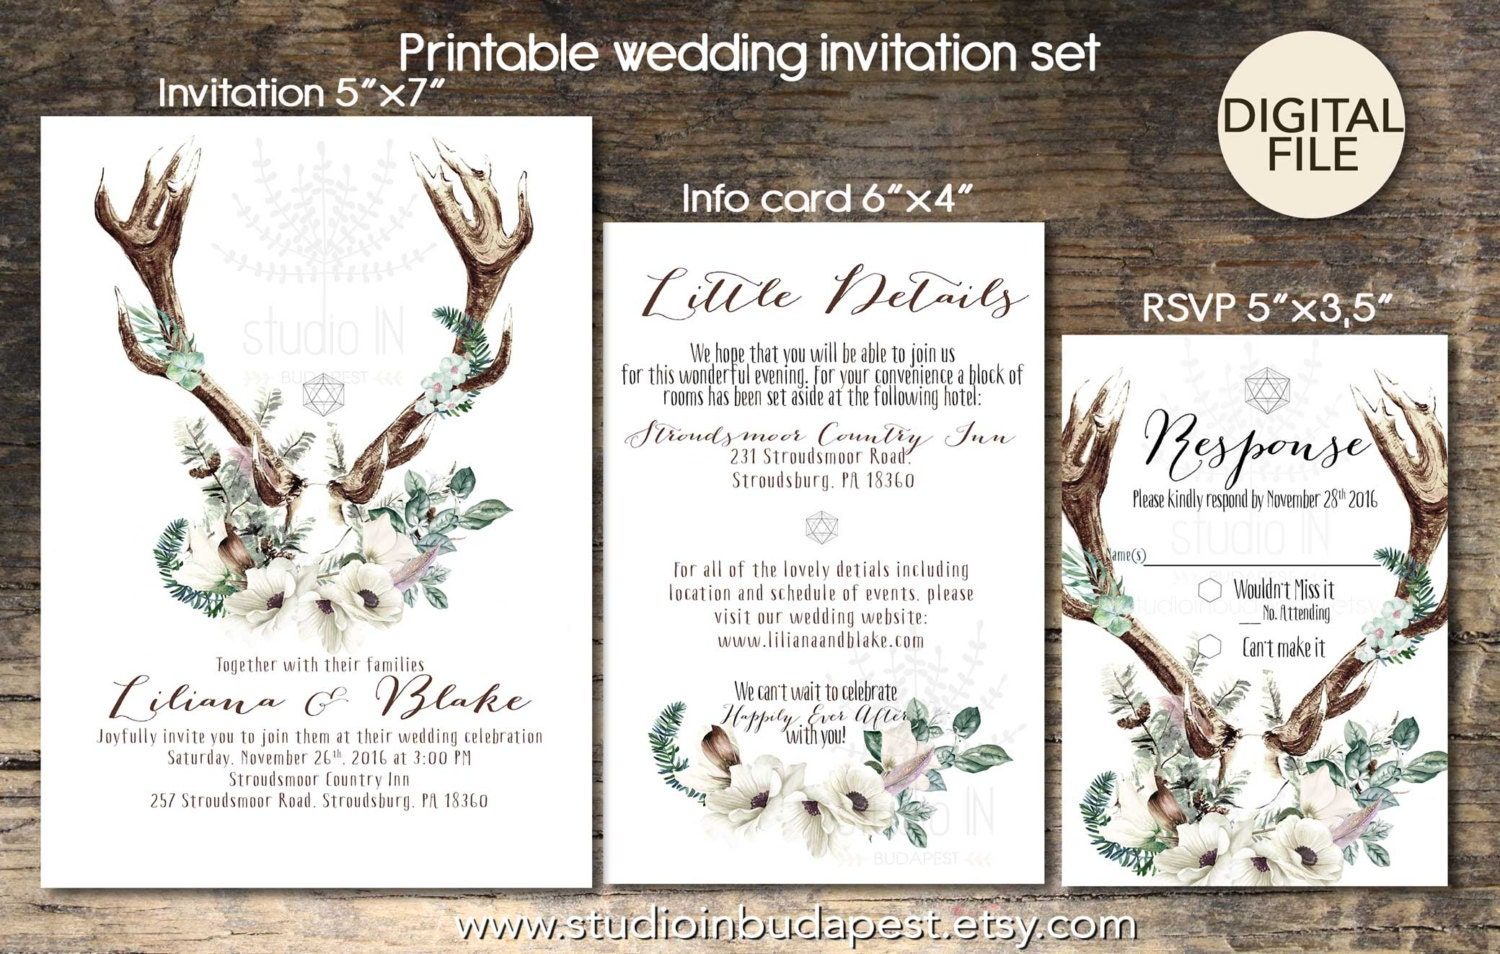 Wedding Invitation Cards Buy Online: Bohemian Wedding Invitation Boho Rustic Wedding Invite